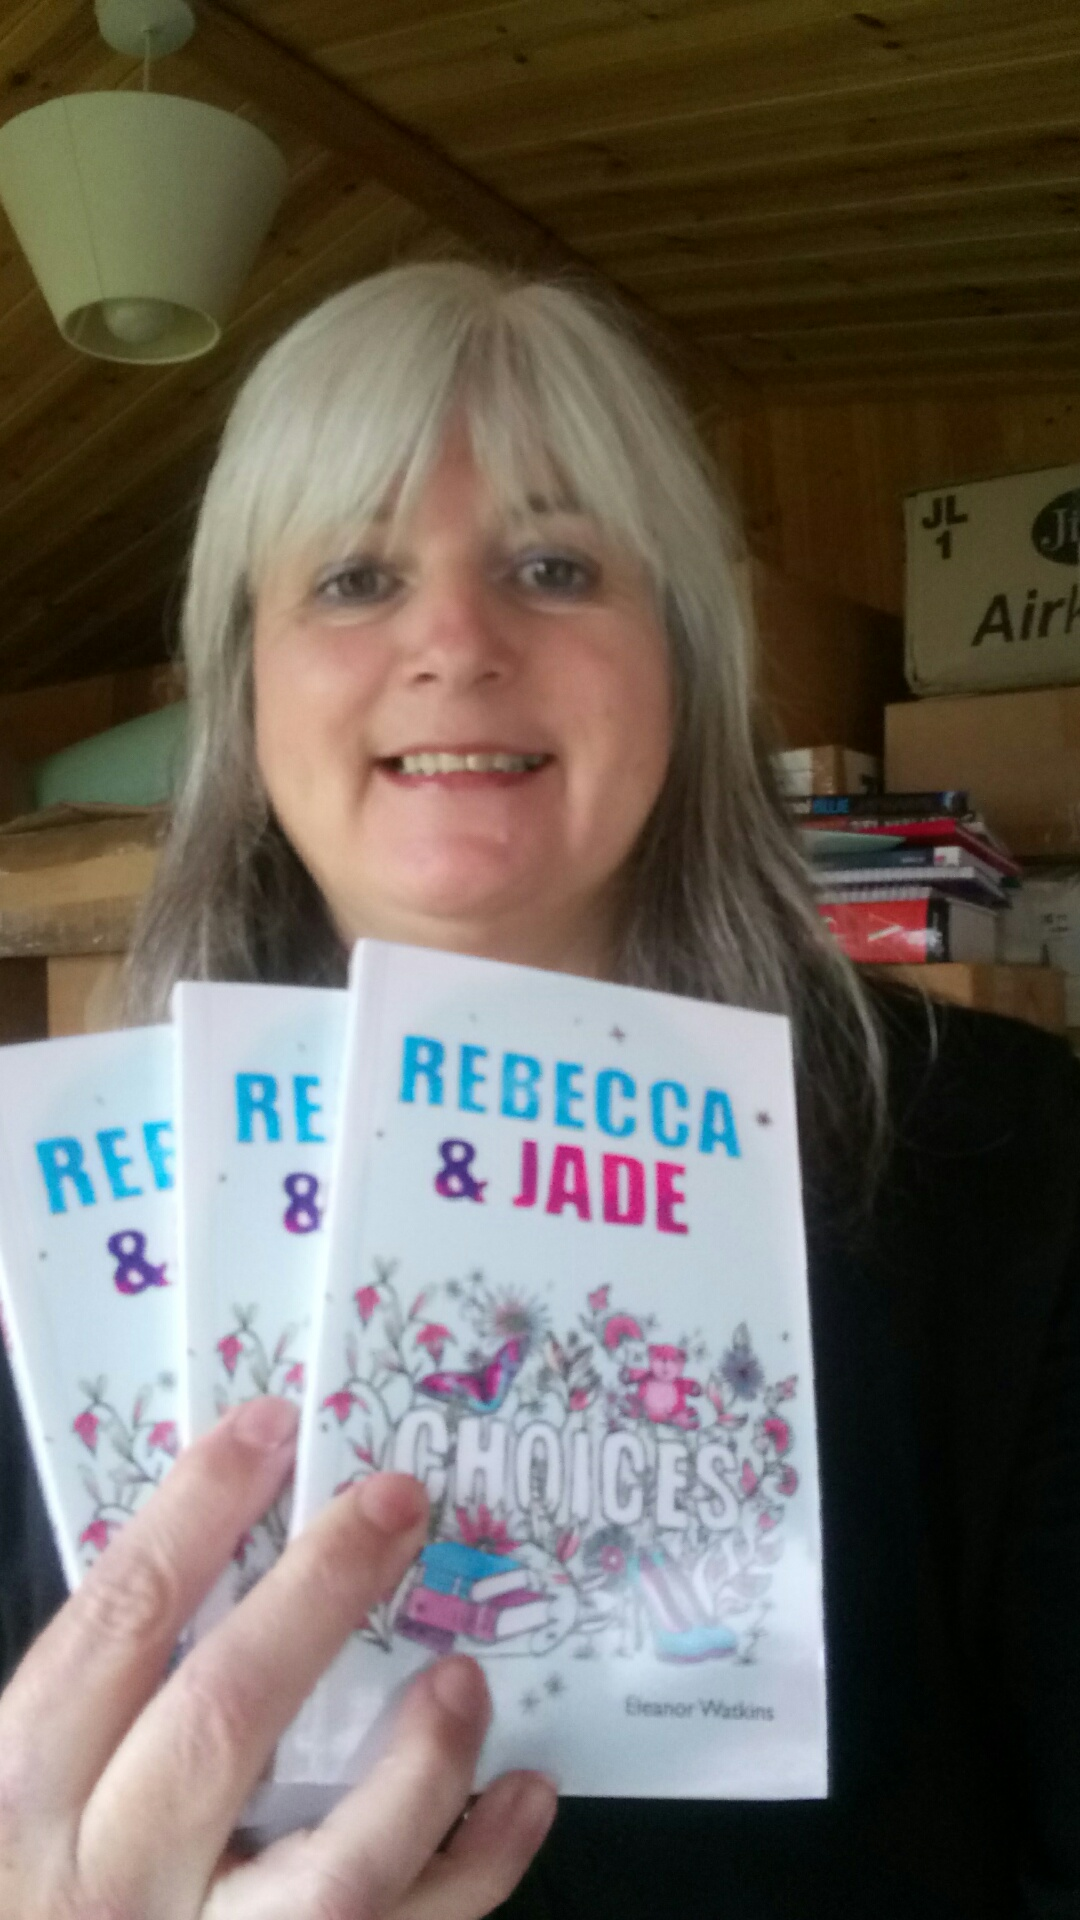 Rebecca and Jade: Choices held by Janet Wilson of Dernier Publishing